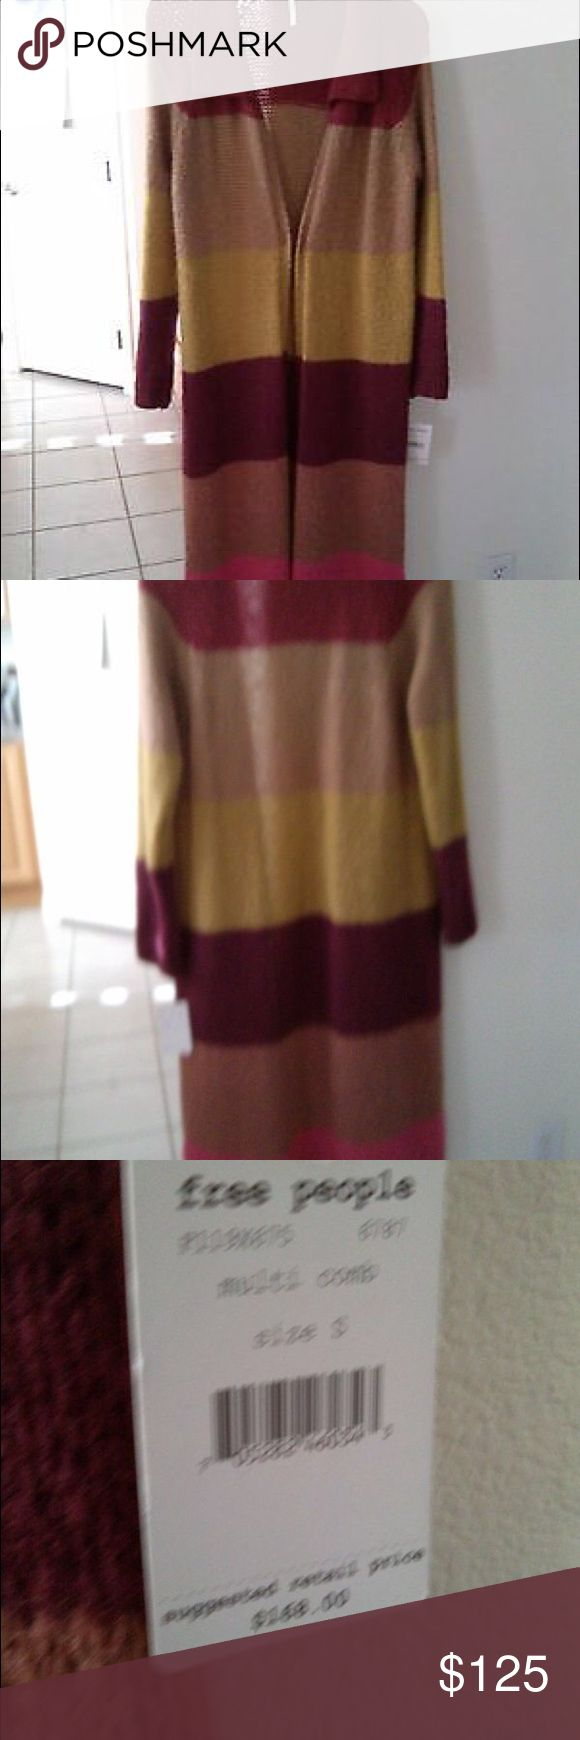 NWT free people colorblock long cardigan small This brand new Free People coat sweater is sold at department store for $168.00. It is in perfection condition, it has multi color: red, beige, yellow, brown and pink.  Measurement: L=43.5, armpit to armpit =17, Sleeve= 24 and sleeve opening= 4 inches. Free People Sweaters Cardigans